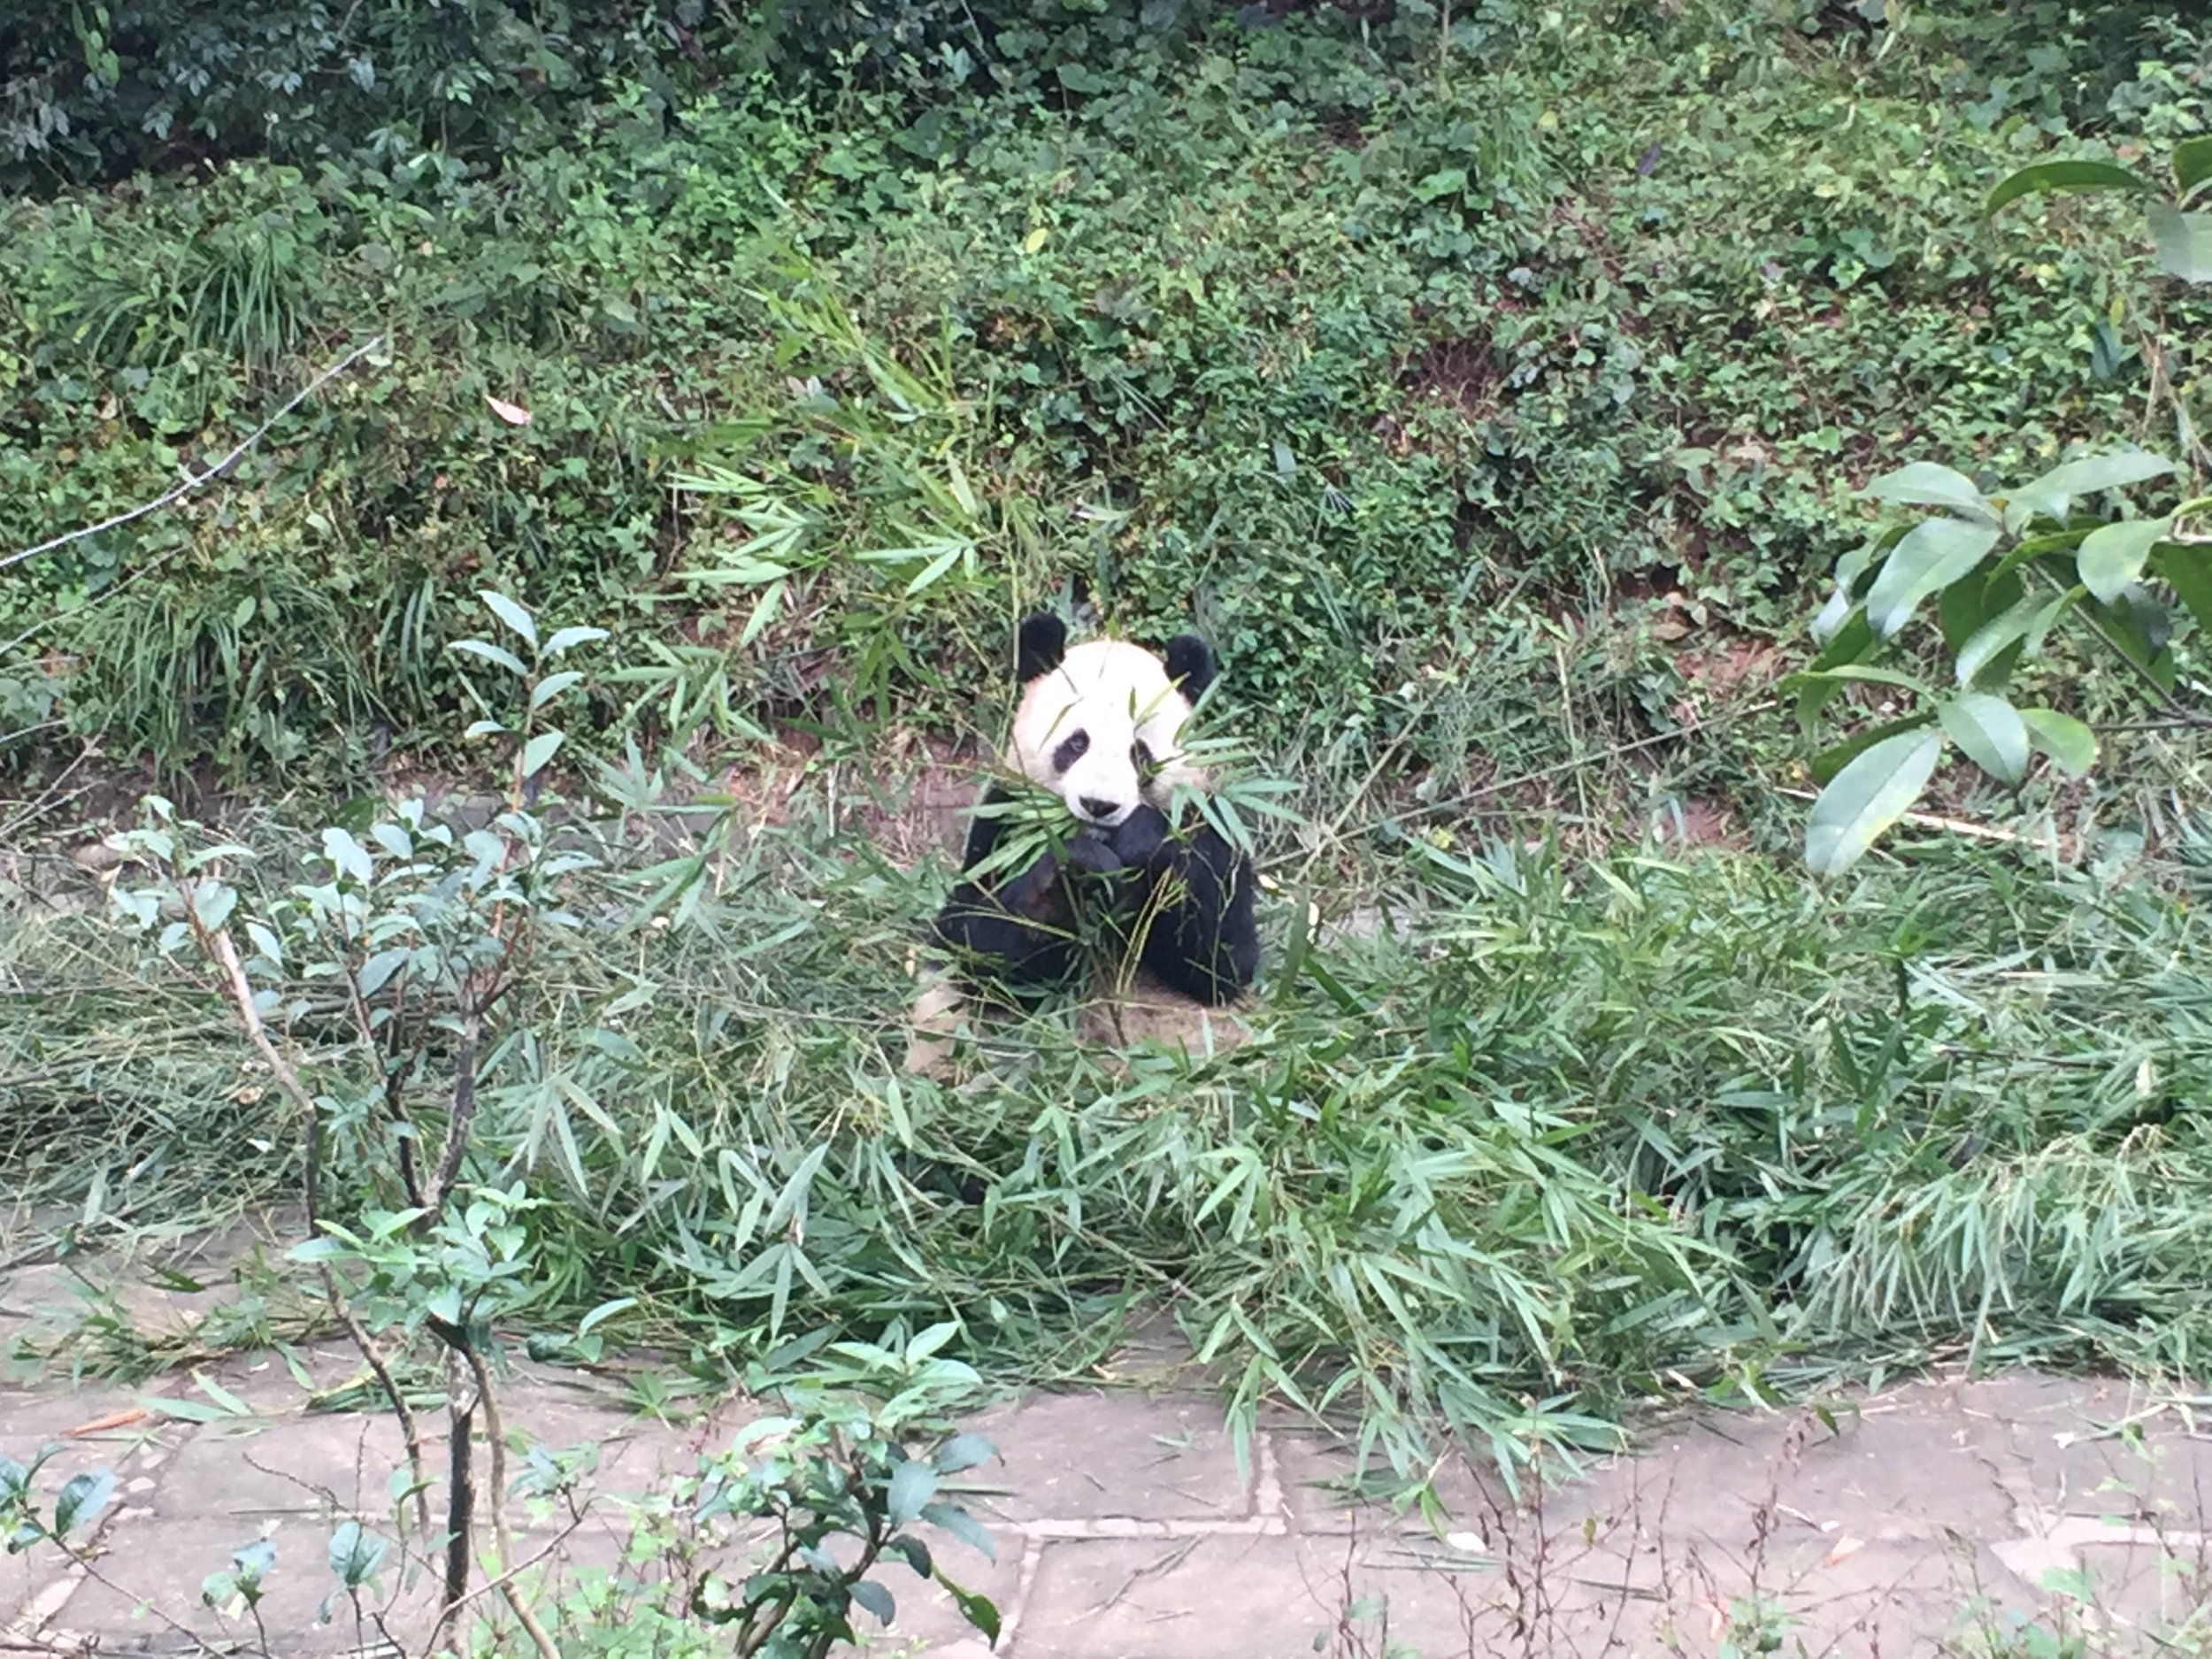 Another Panda on the way back